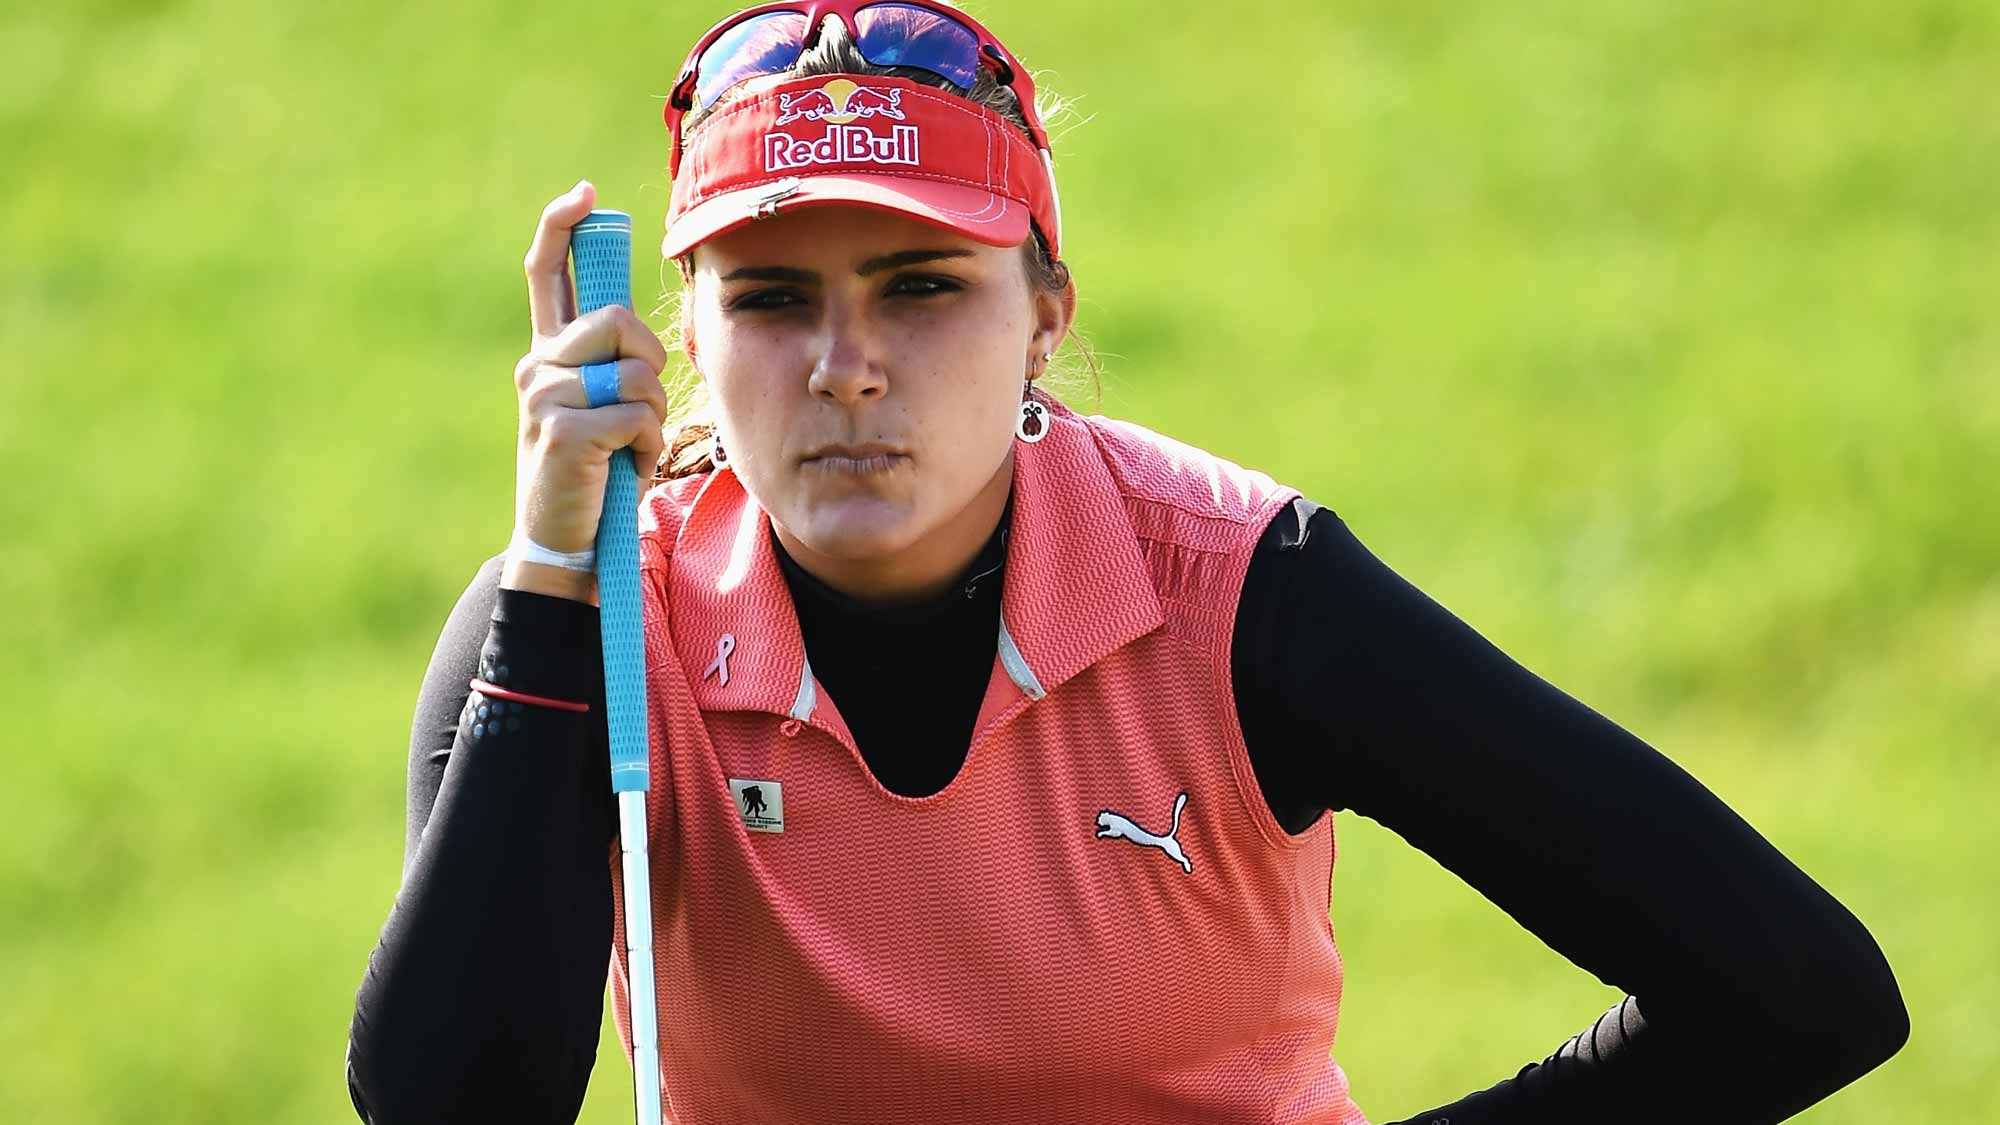 Lexi Thompson of USA lines up a putt during the first round of the Evian Championship Golf on September 10, 2015 in Evian-les-Bains, France